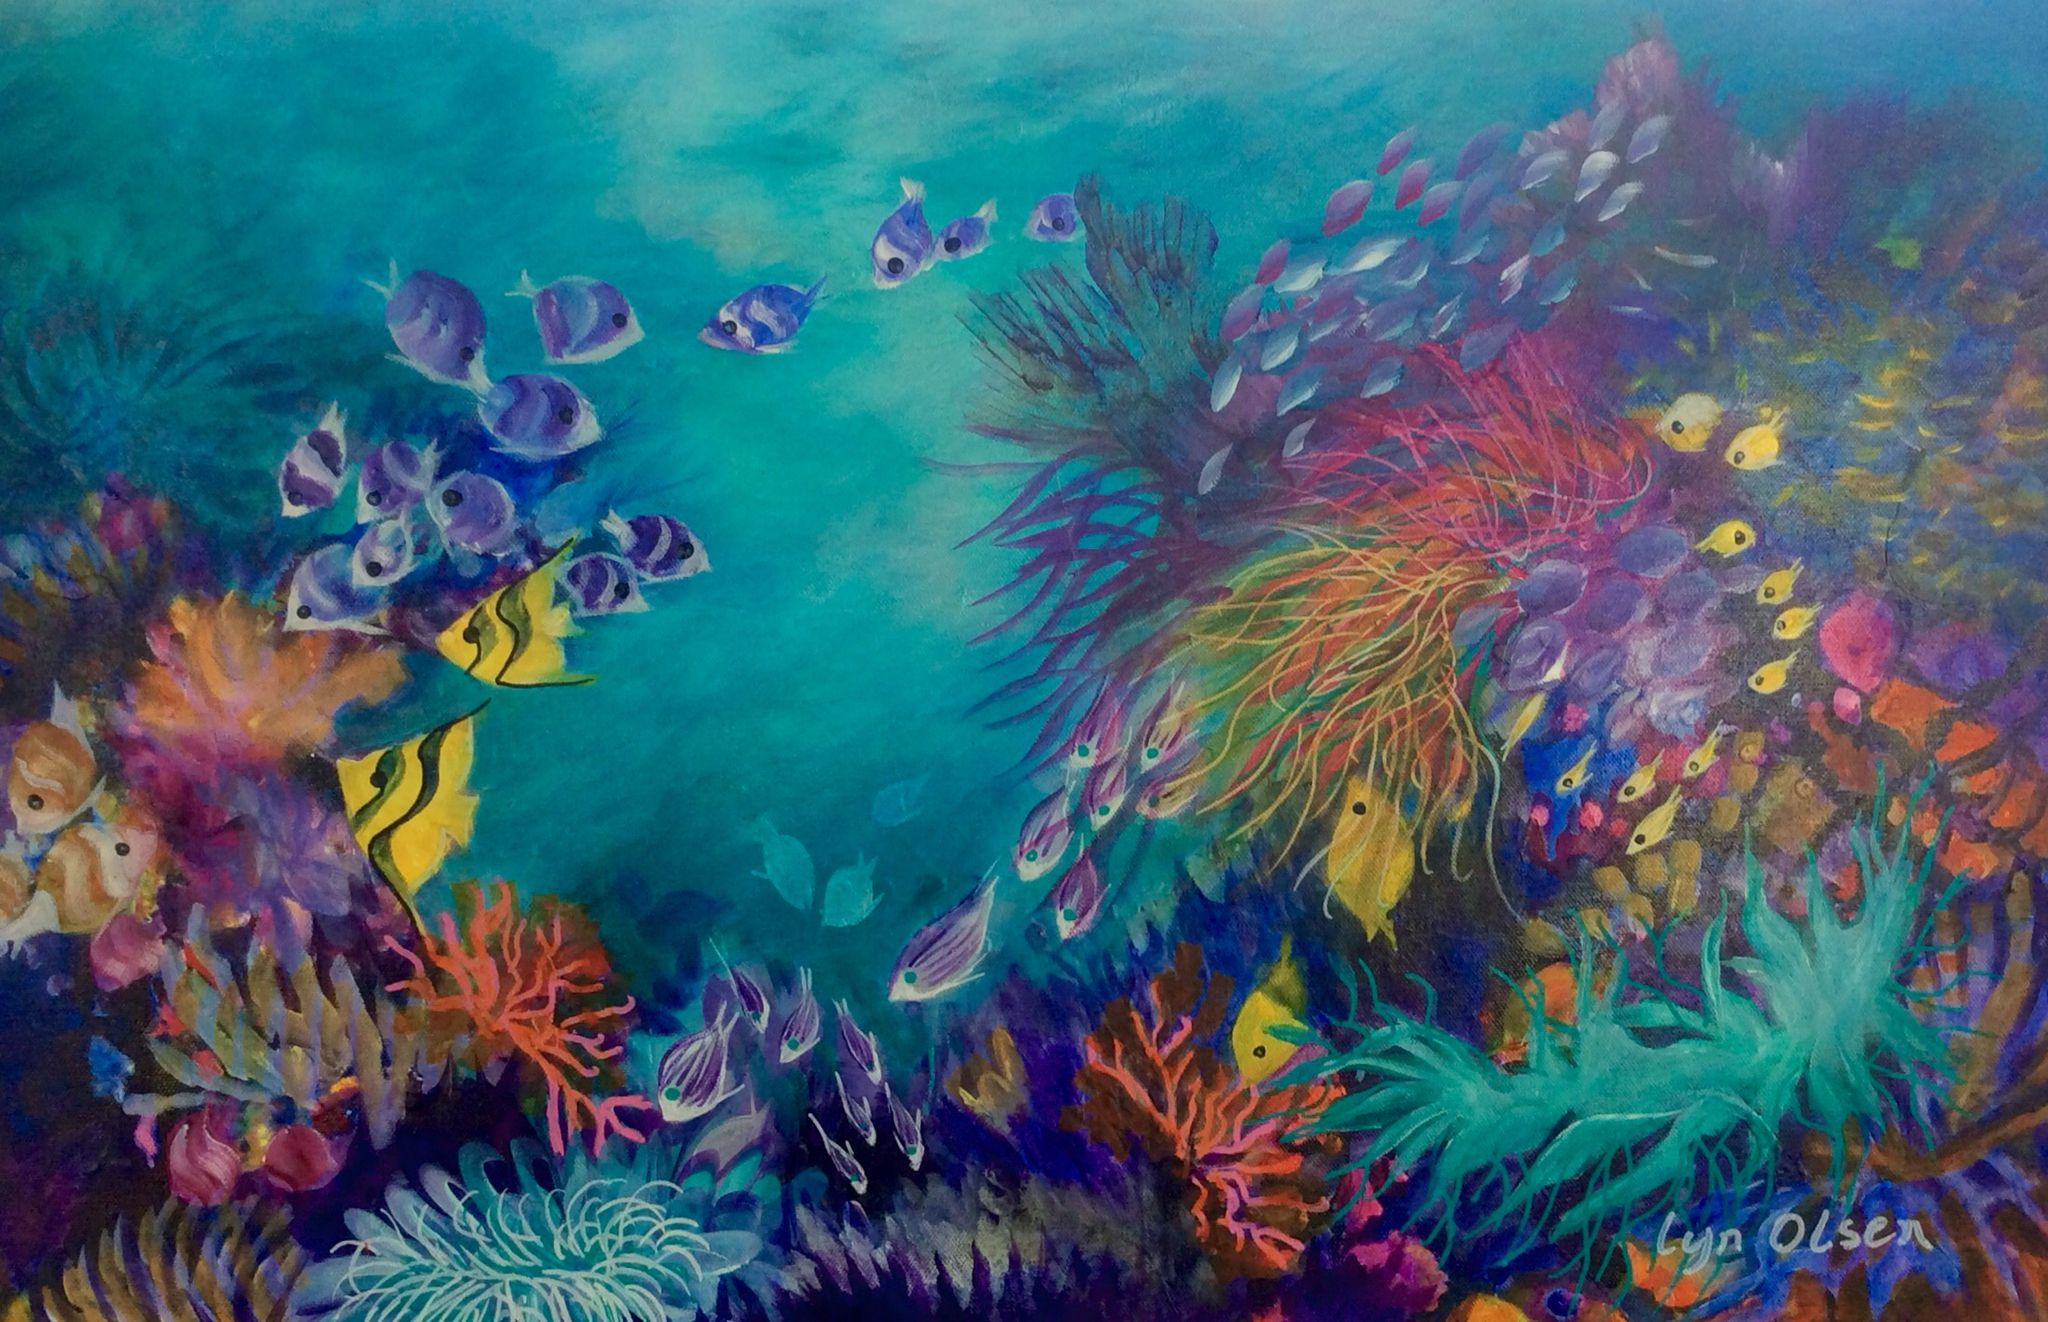 http://www.lynolsen.com underwater corals and fish from ...